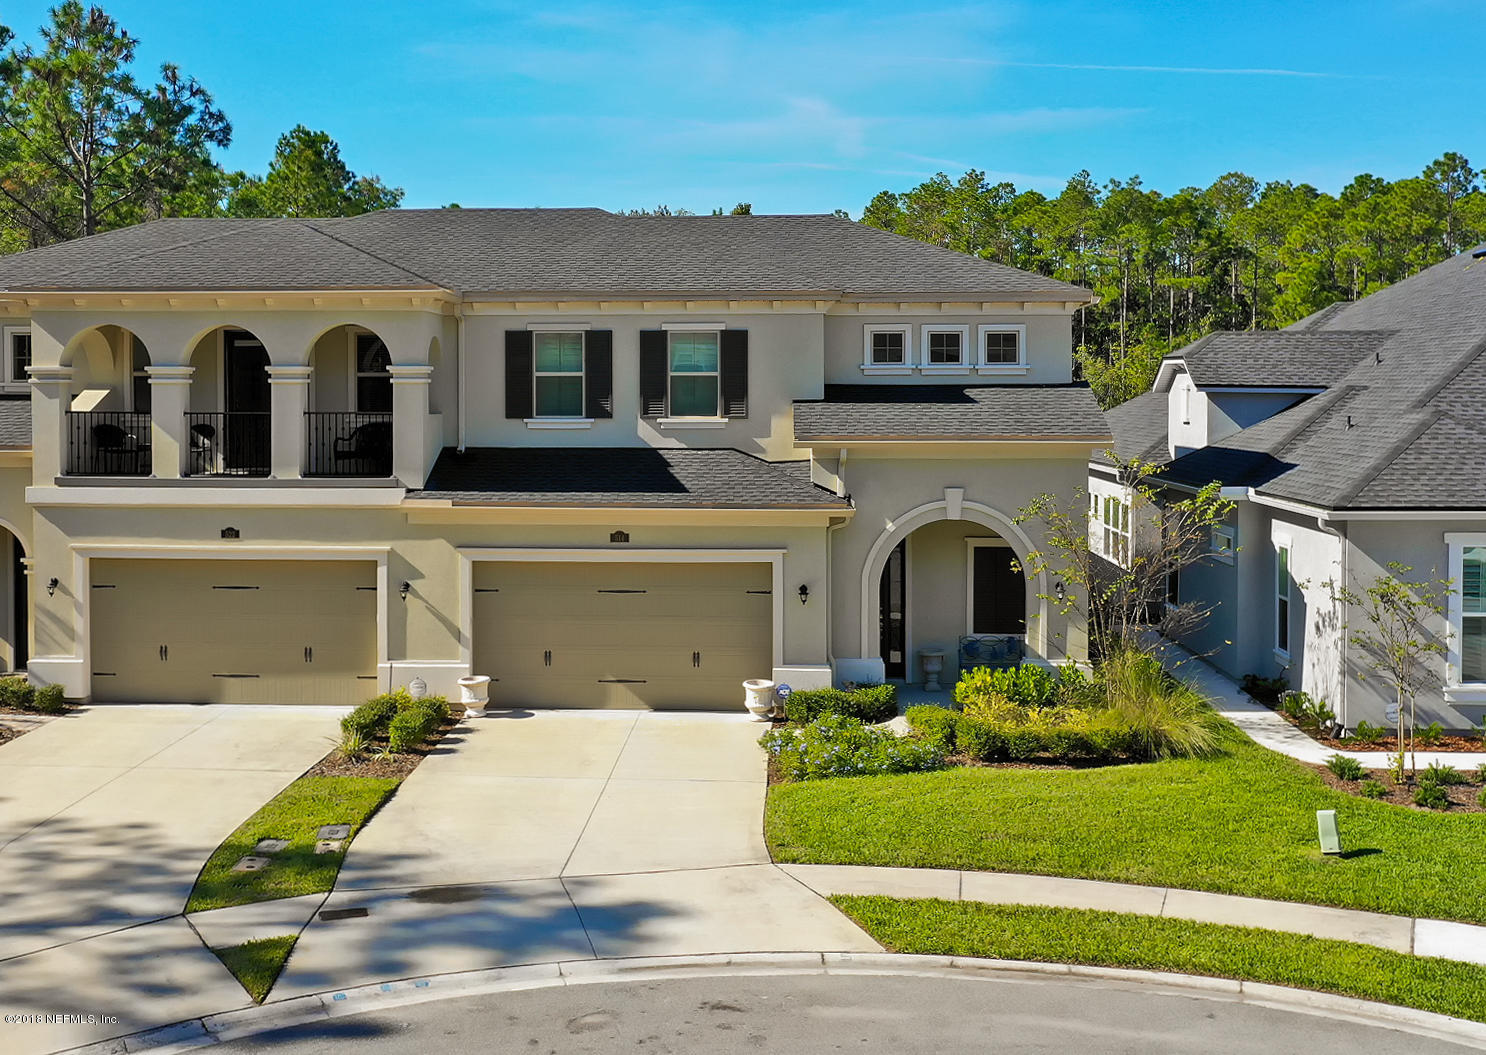 514 WINGSTONE, PONTE VEDRA, FLORIDA 32081, 3 Bedrooms Bedrooms, ,3 BathroomsBathrooms,Residential - townhome,For sale,WINGSTONE,968384